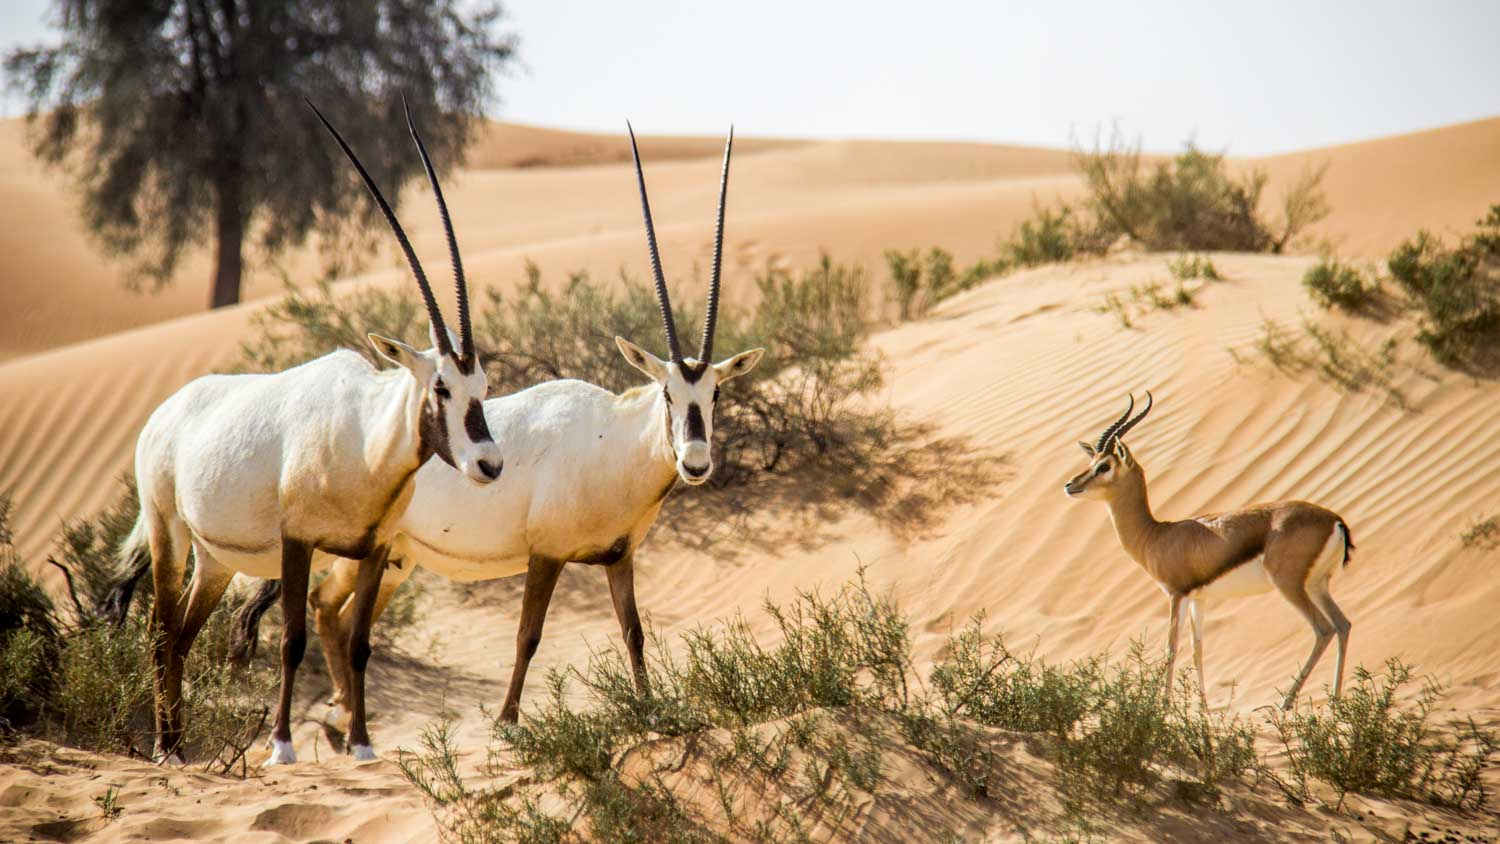 Arabian Oryx and Sand Gazelle in the Dubai Desert Conservation Reserve